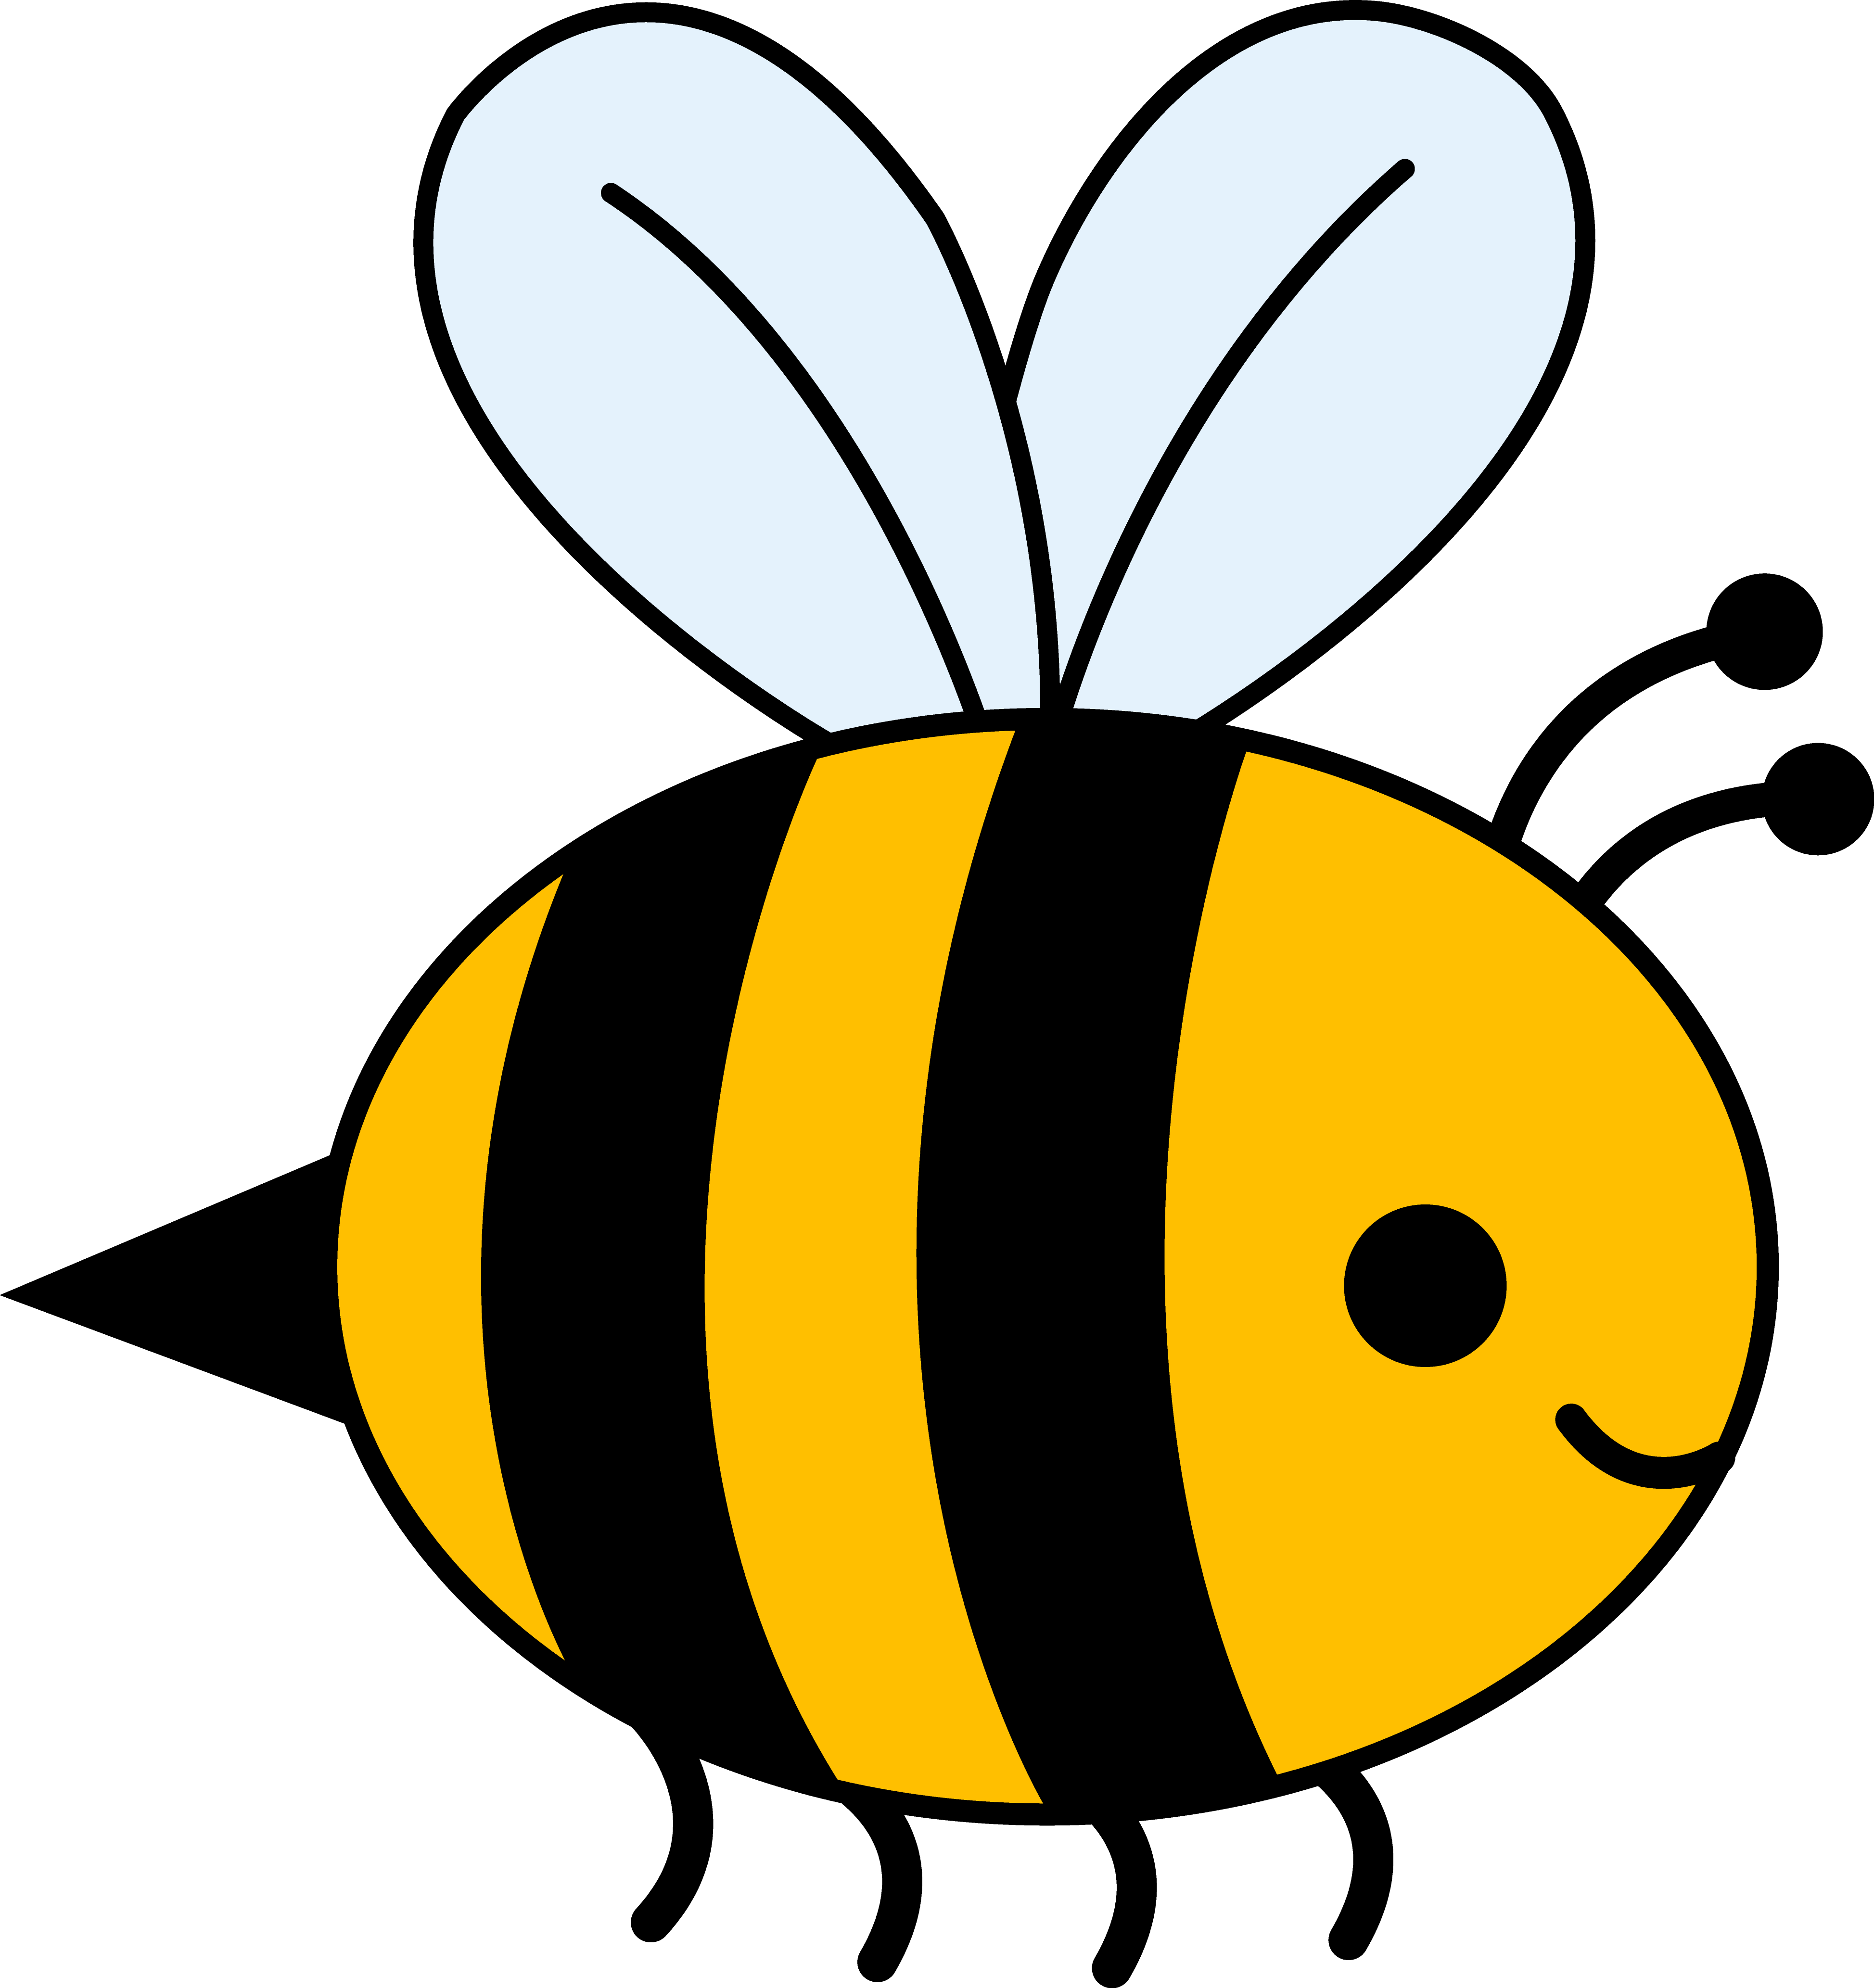 Free Clip Art Bumble Bee - Cliparts.co